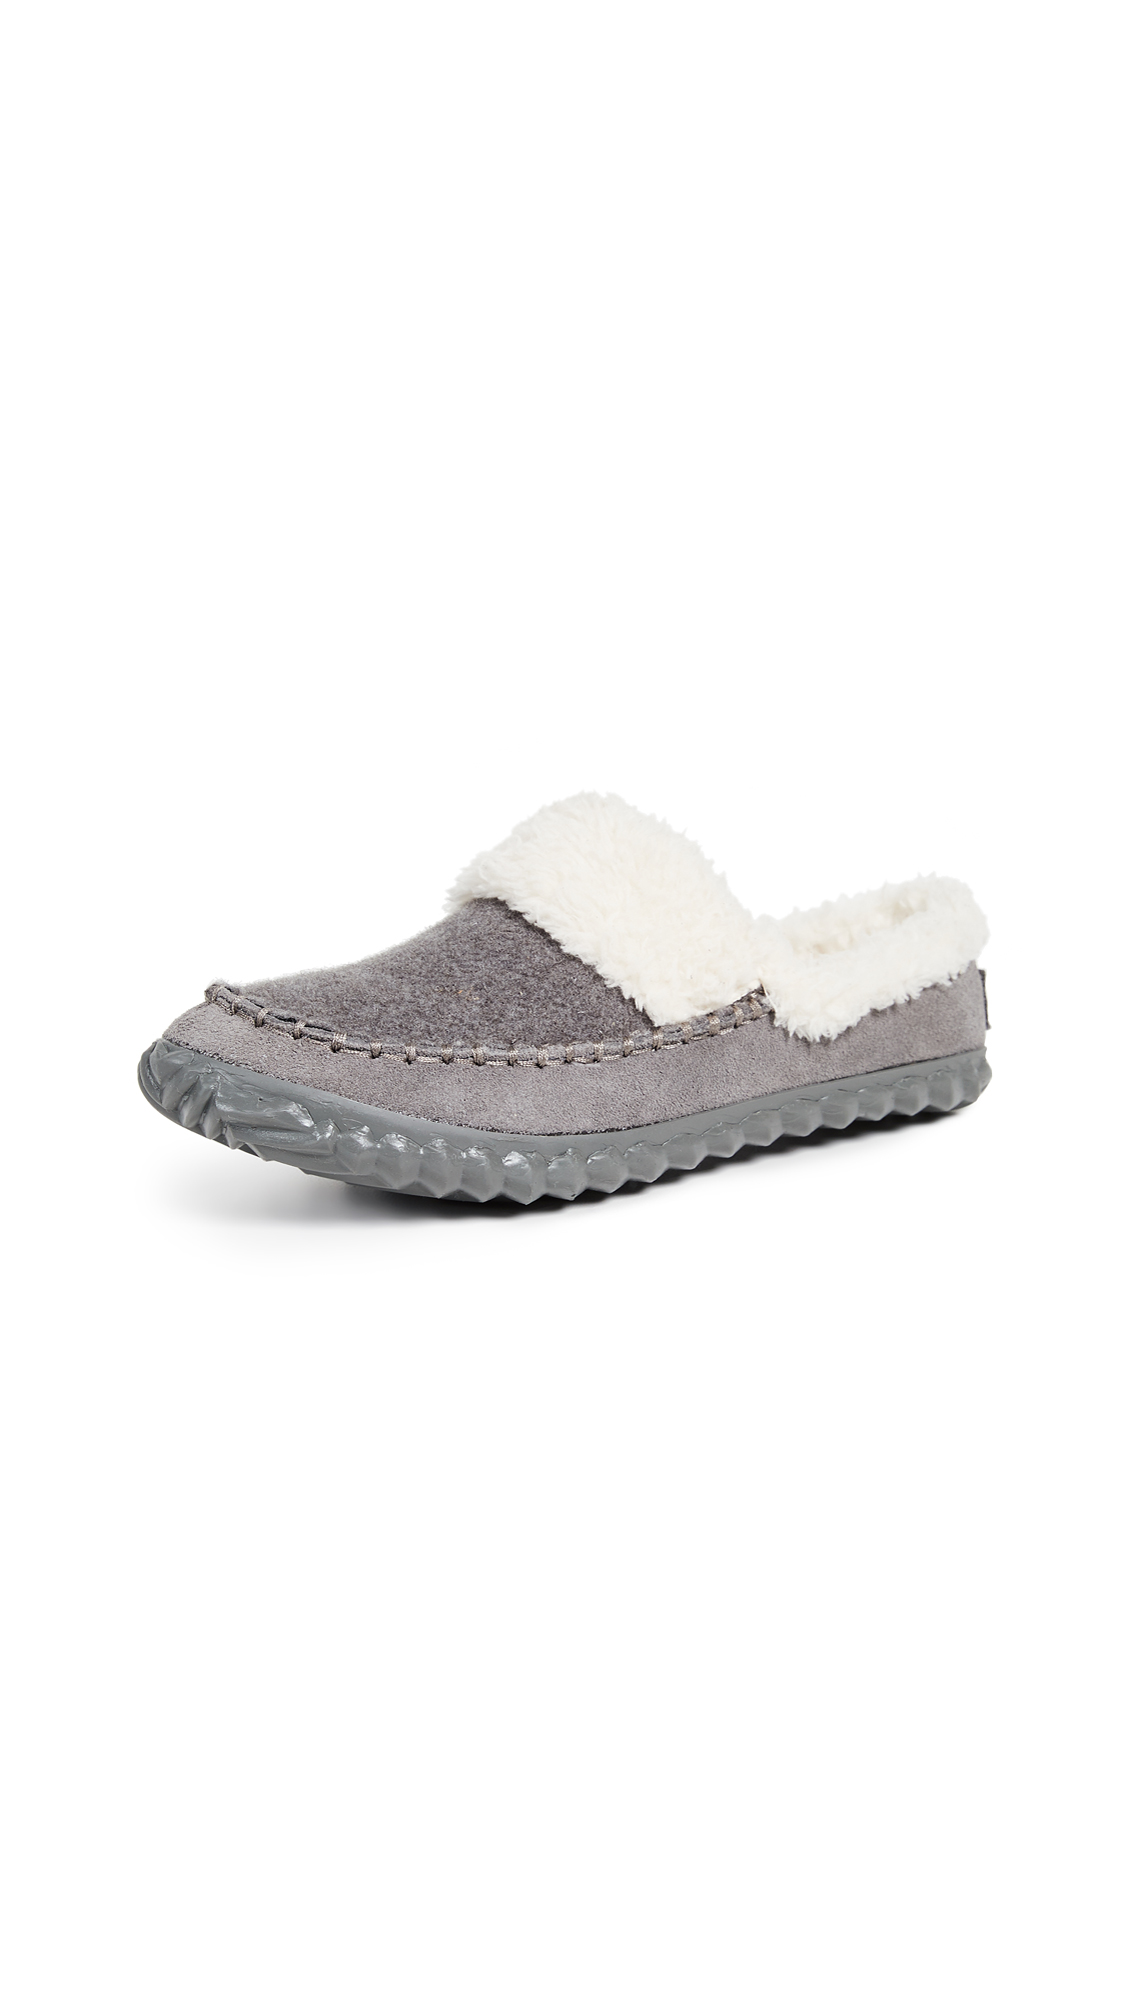 Sorel Out N About Slide Slip On Slippers - Quarry/Natural